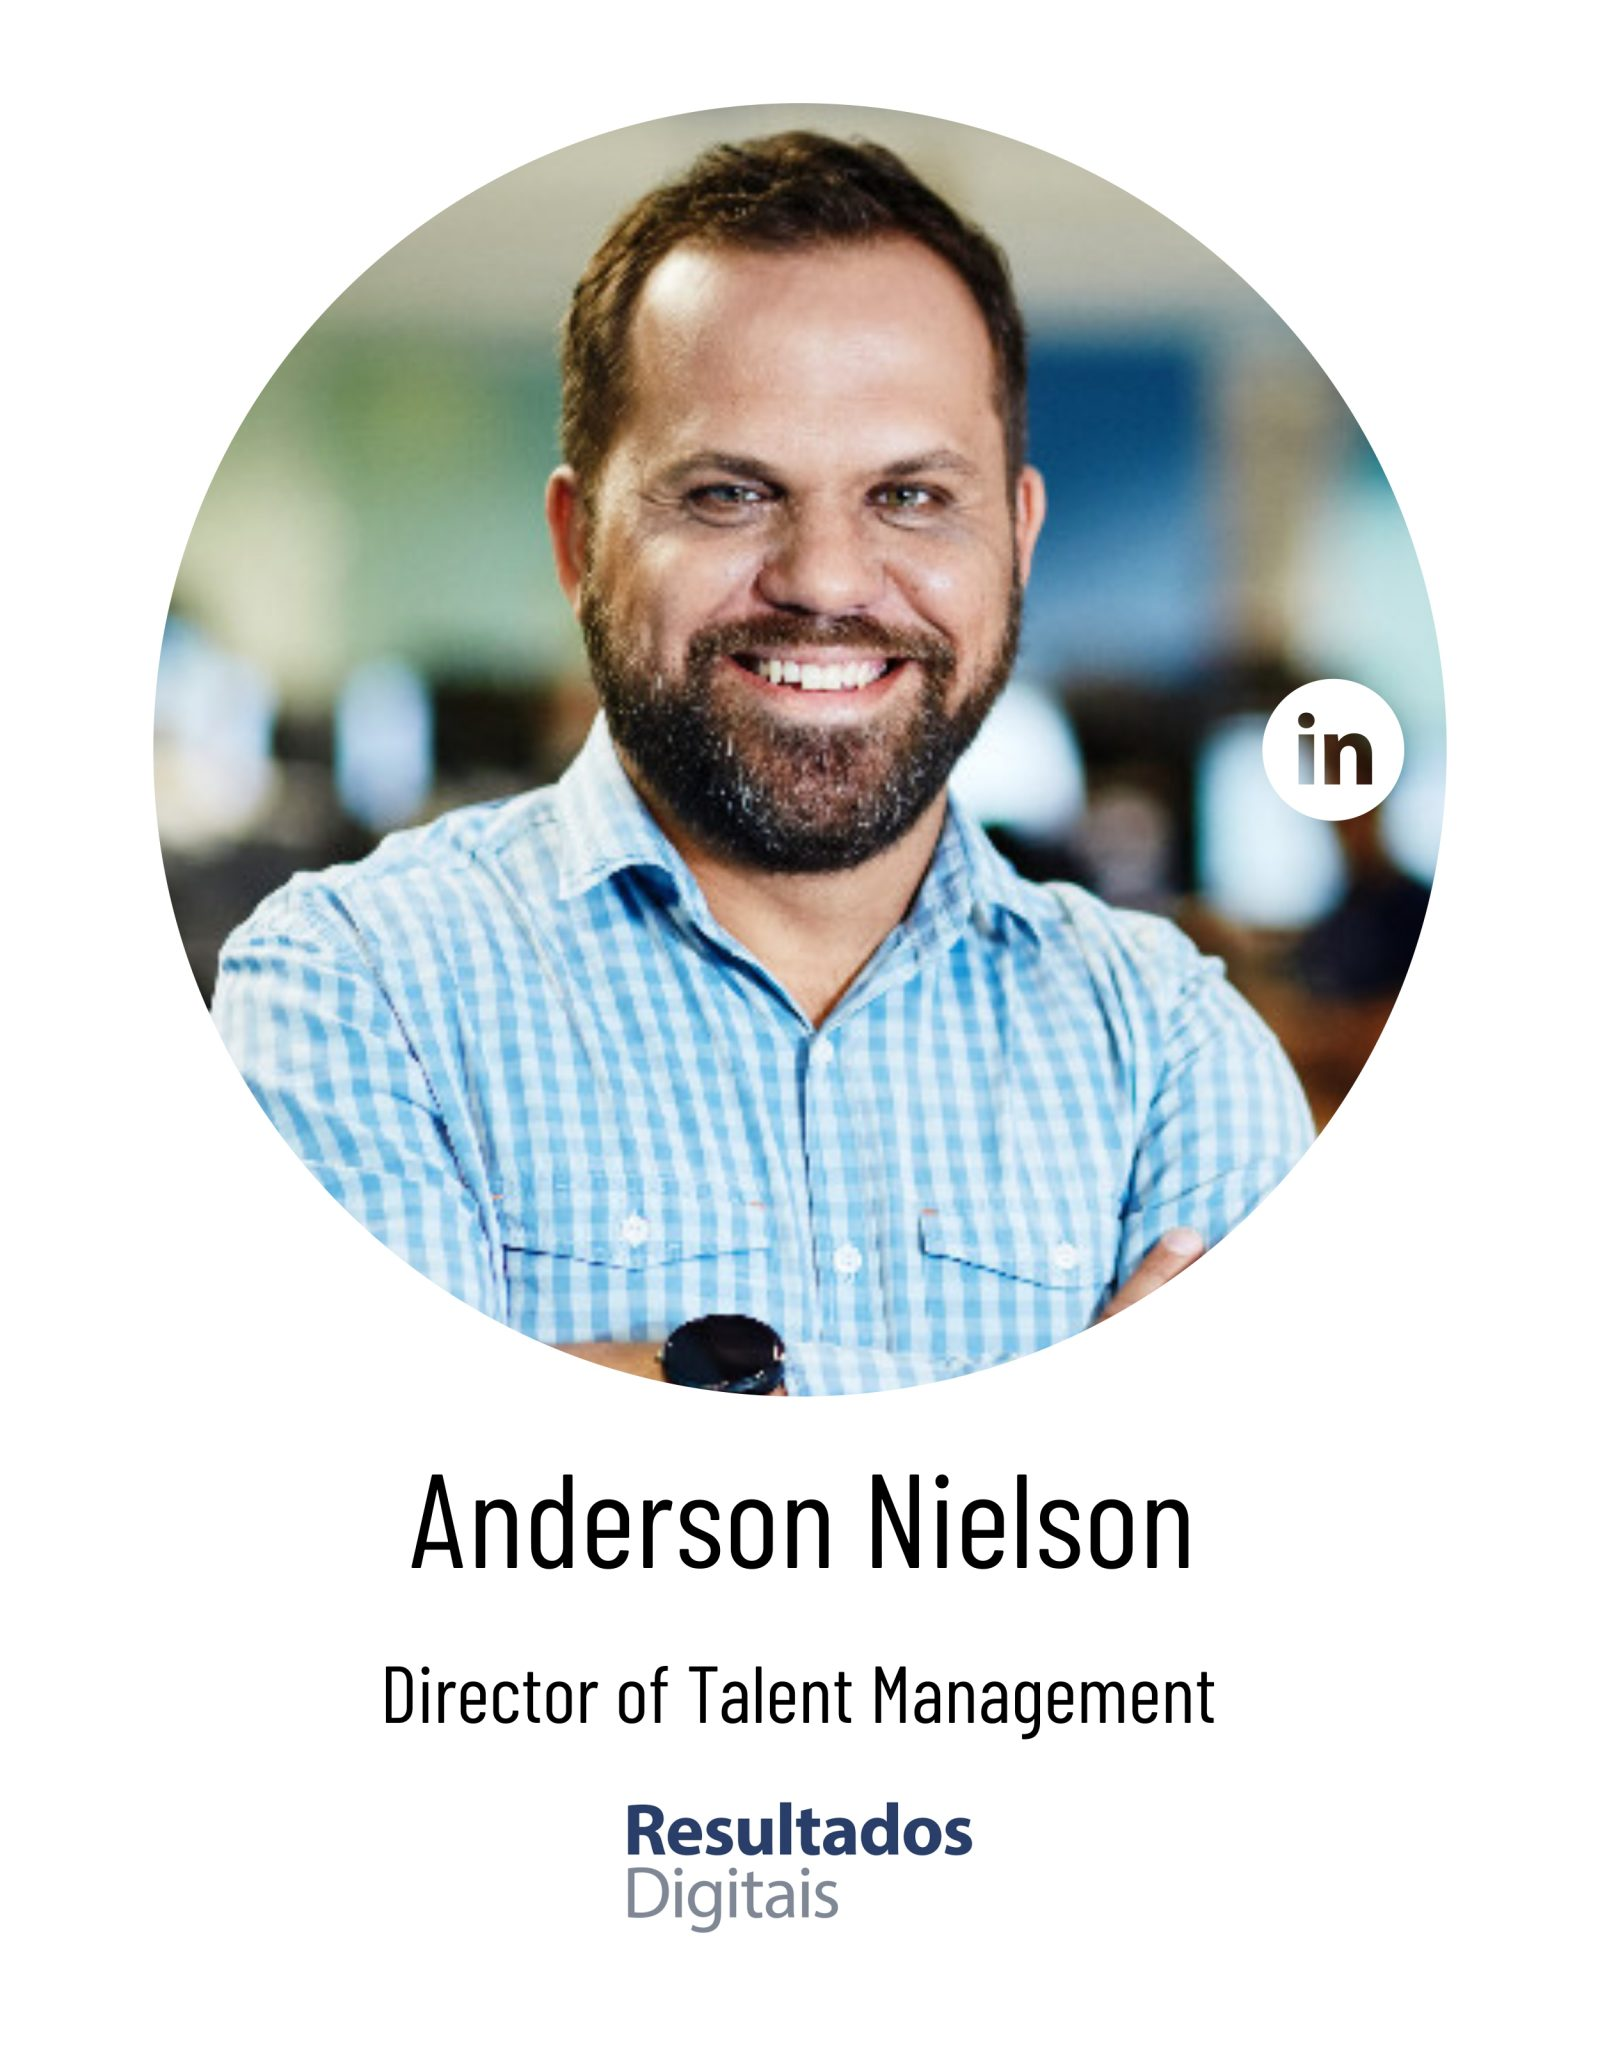 Anderson Nielson